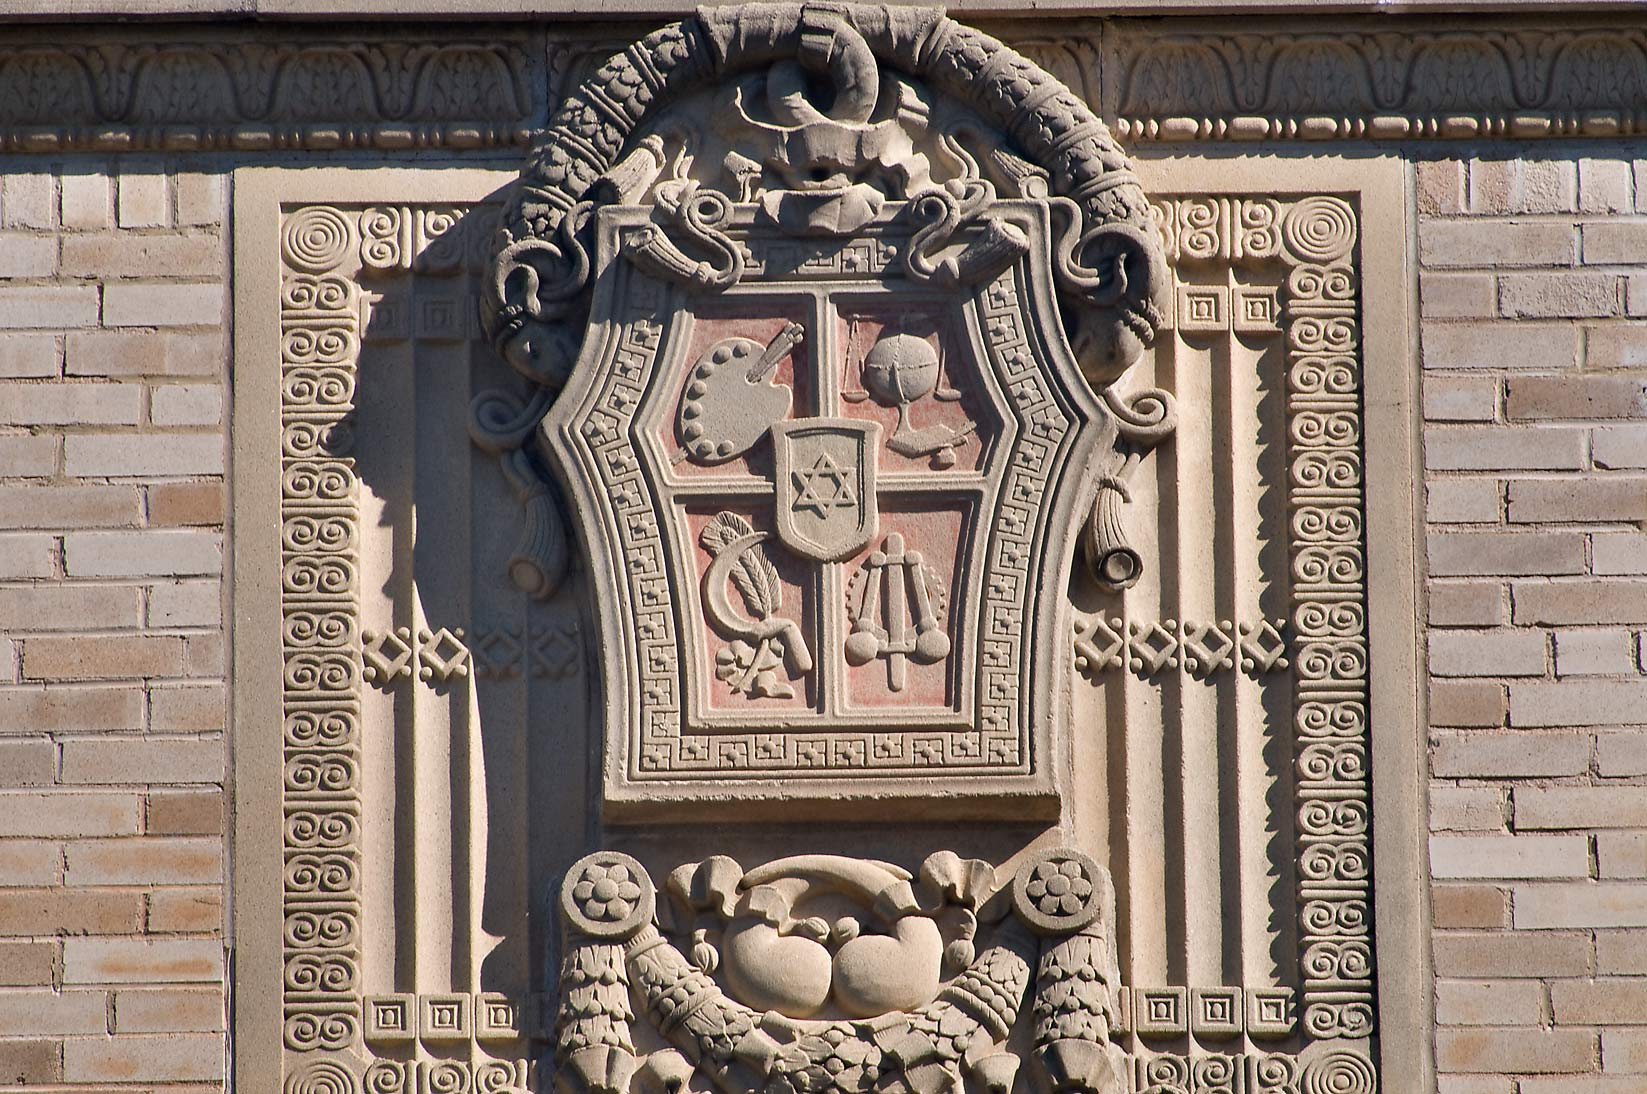 Shield with retorts on southern facade of...M University. College Station, Texas